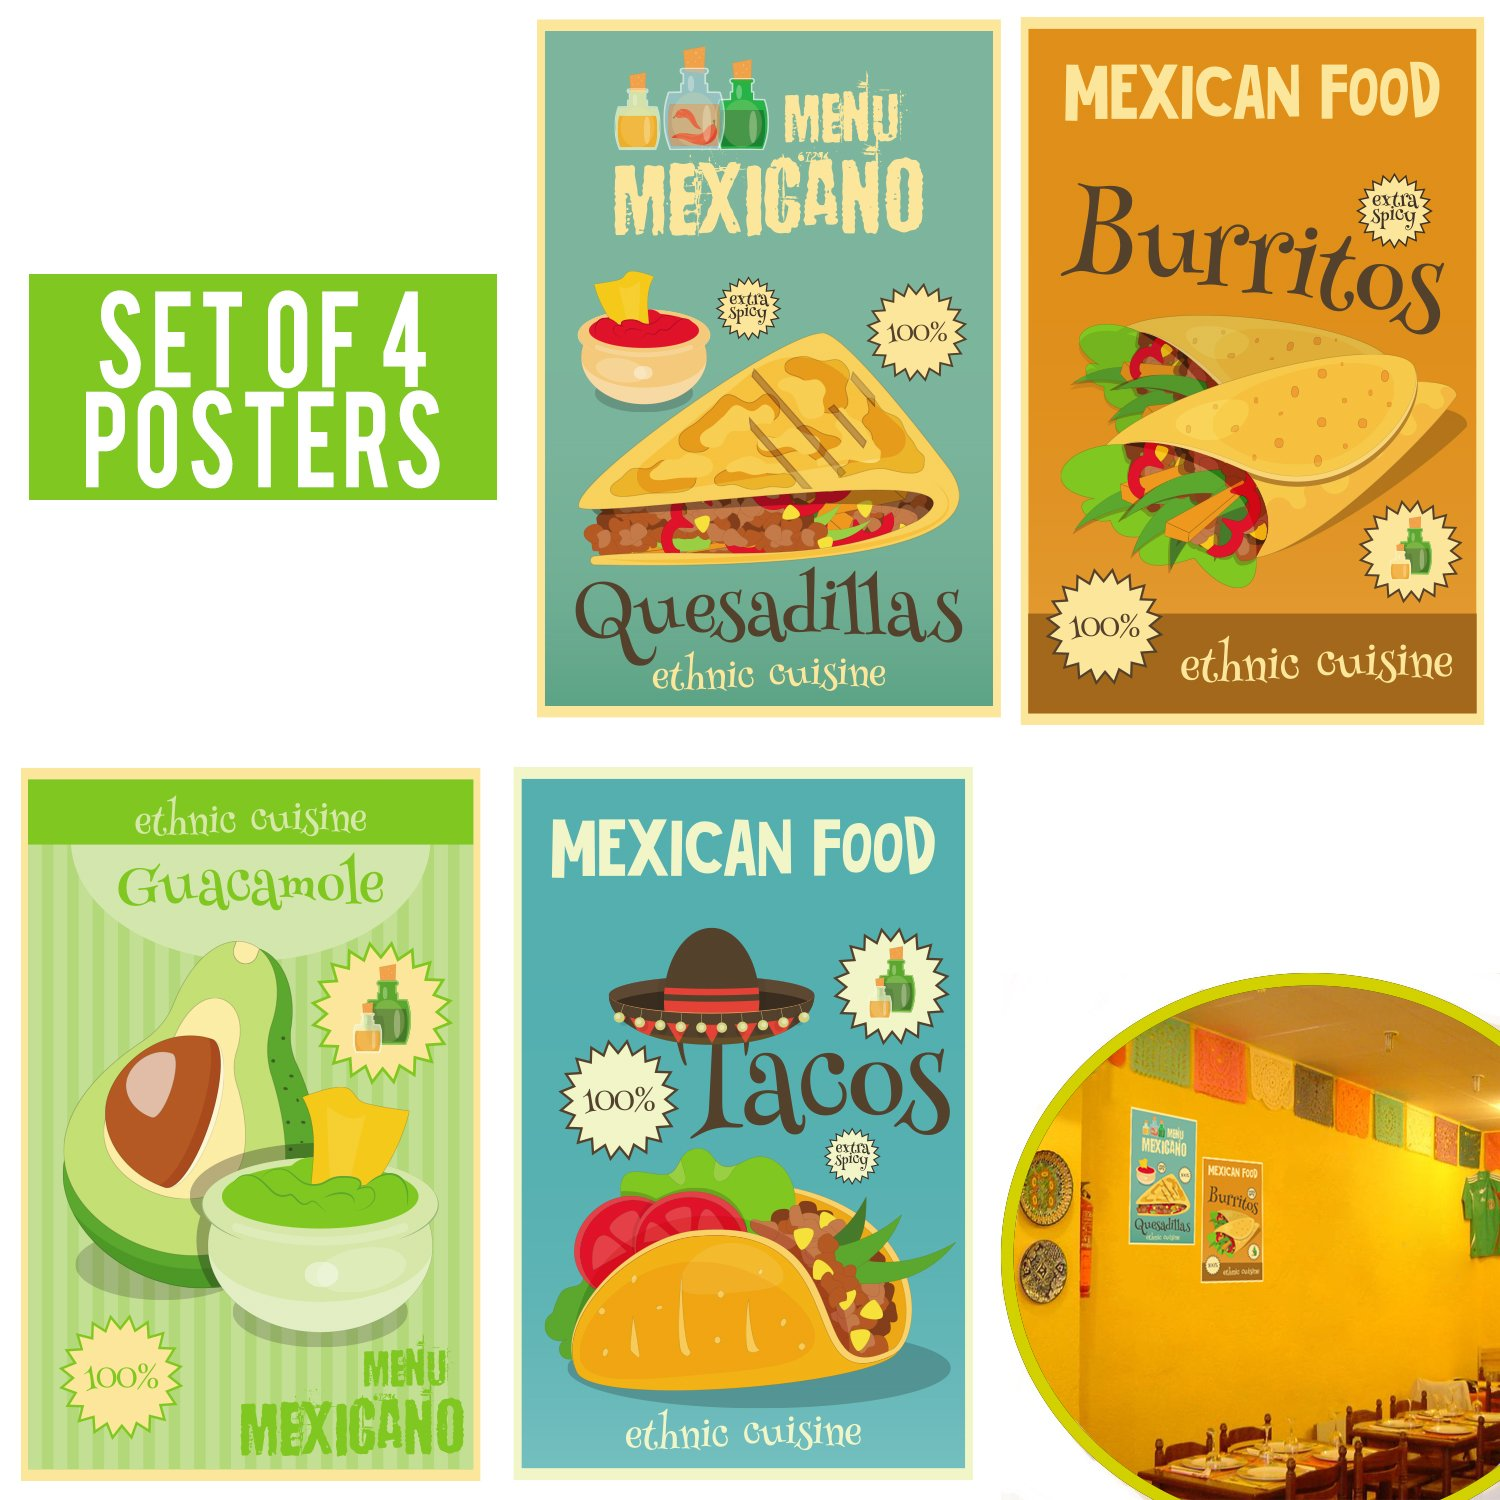 Amazon.com: Limited edition: MEXICAN DECOR Set of Four 11x17 ...